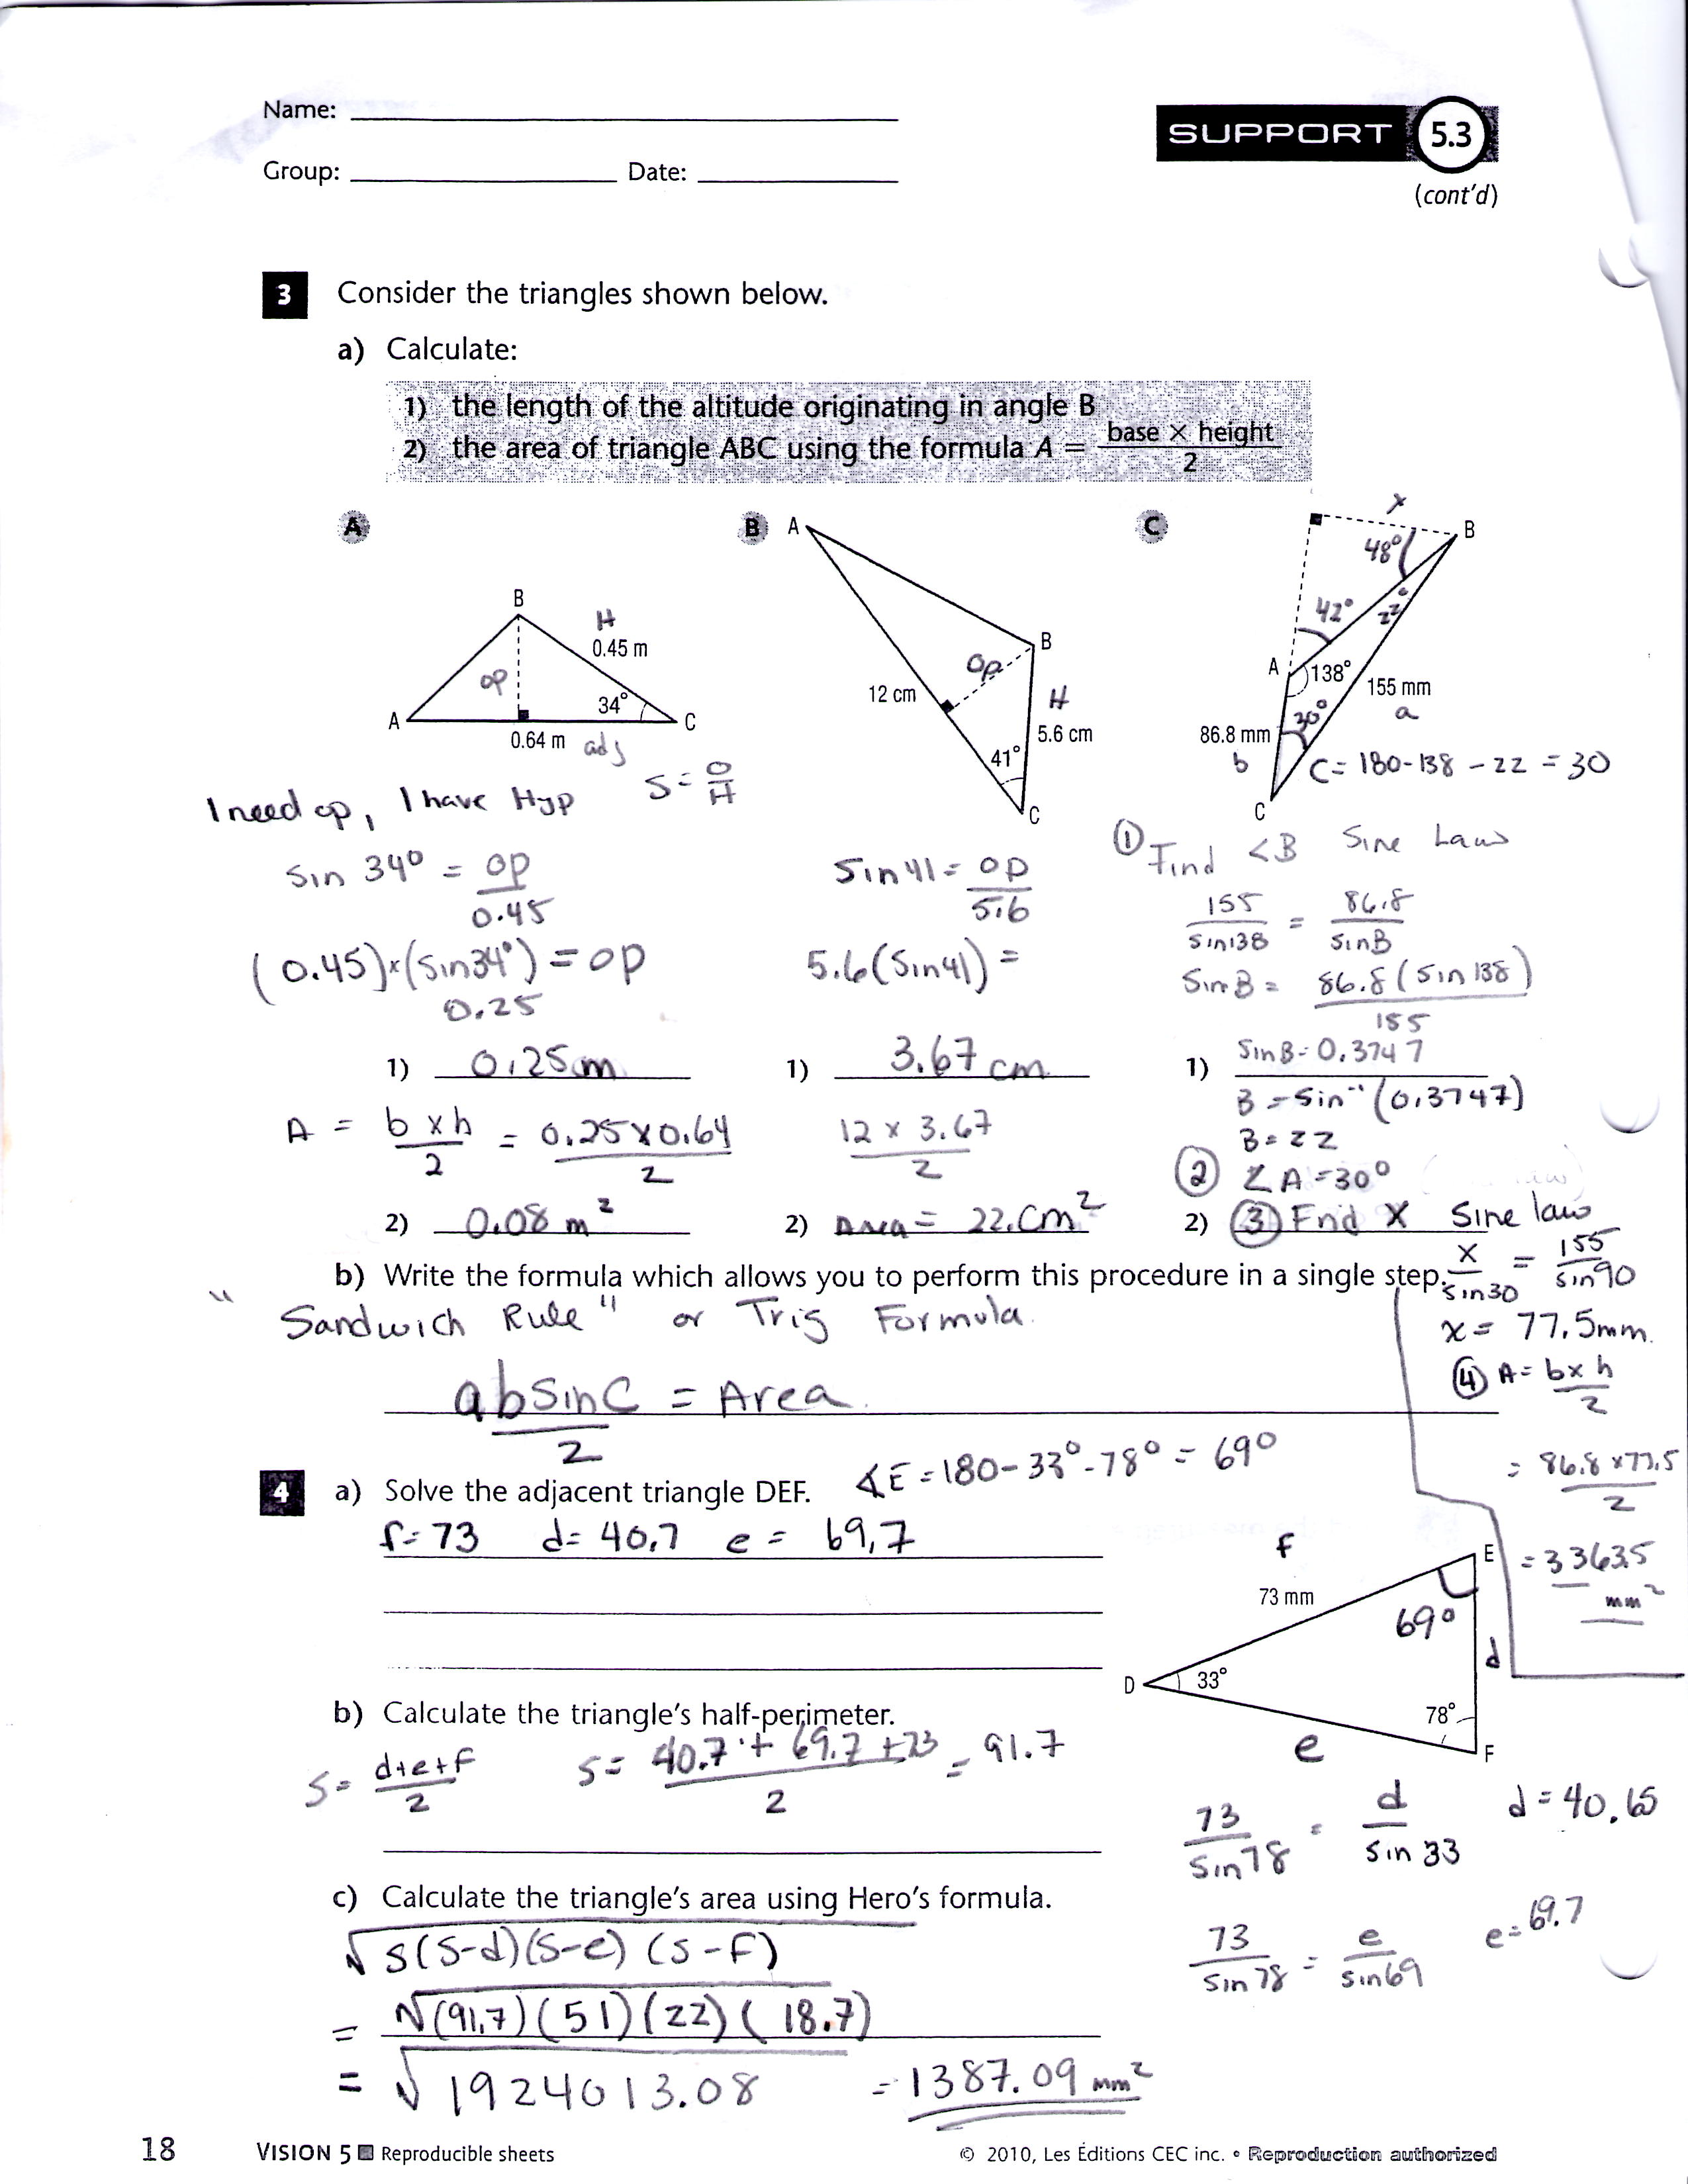 5 3 Solving Trig Equations Practice Worksheet 1